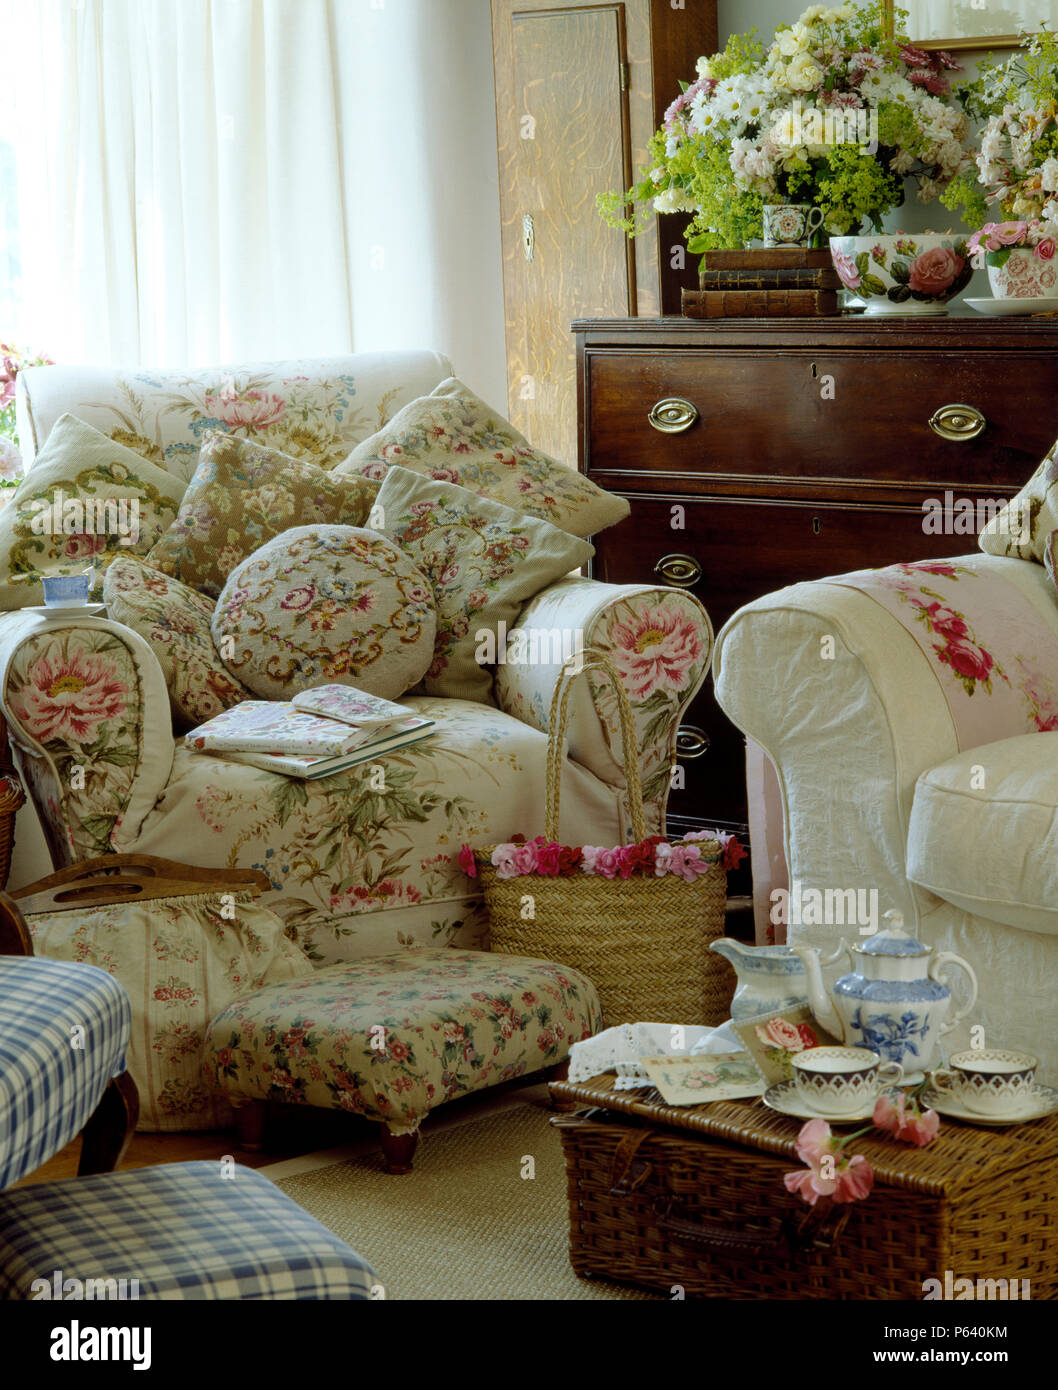 Floral armchair piled with cushions in cluttered cottage living room with tea set on wicker chest - Stock Image